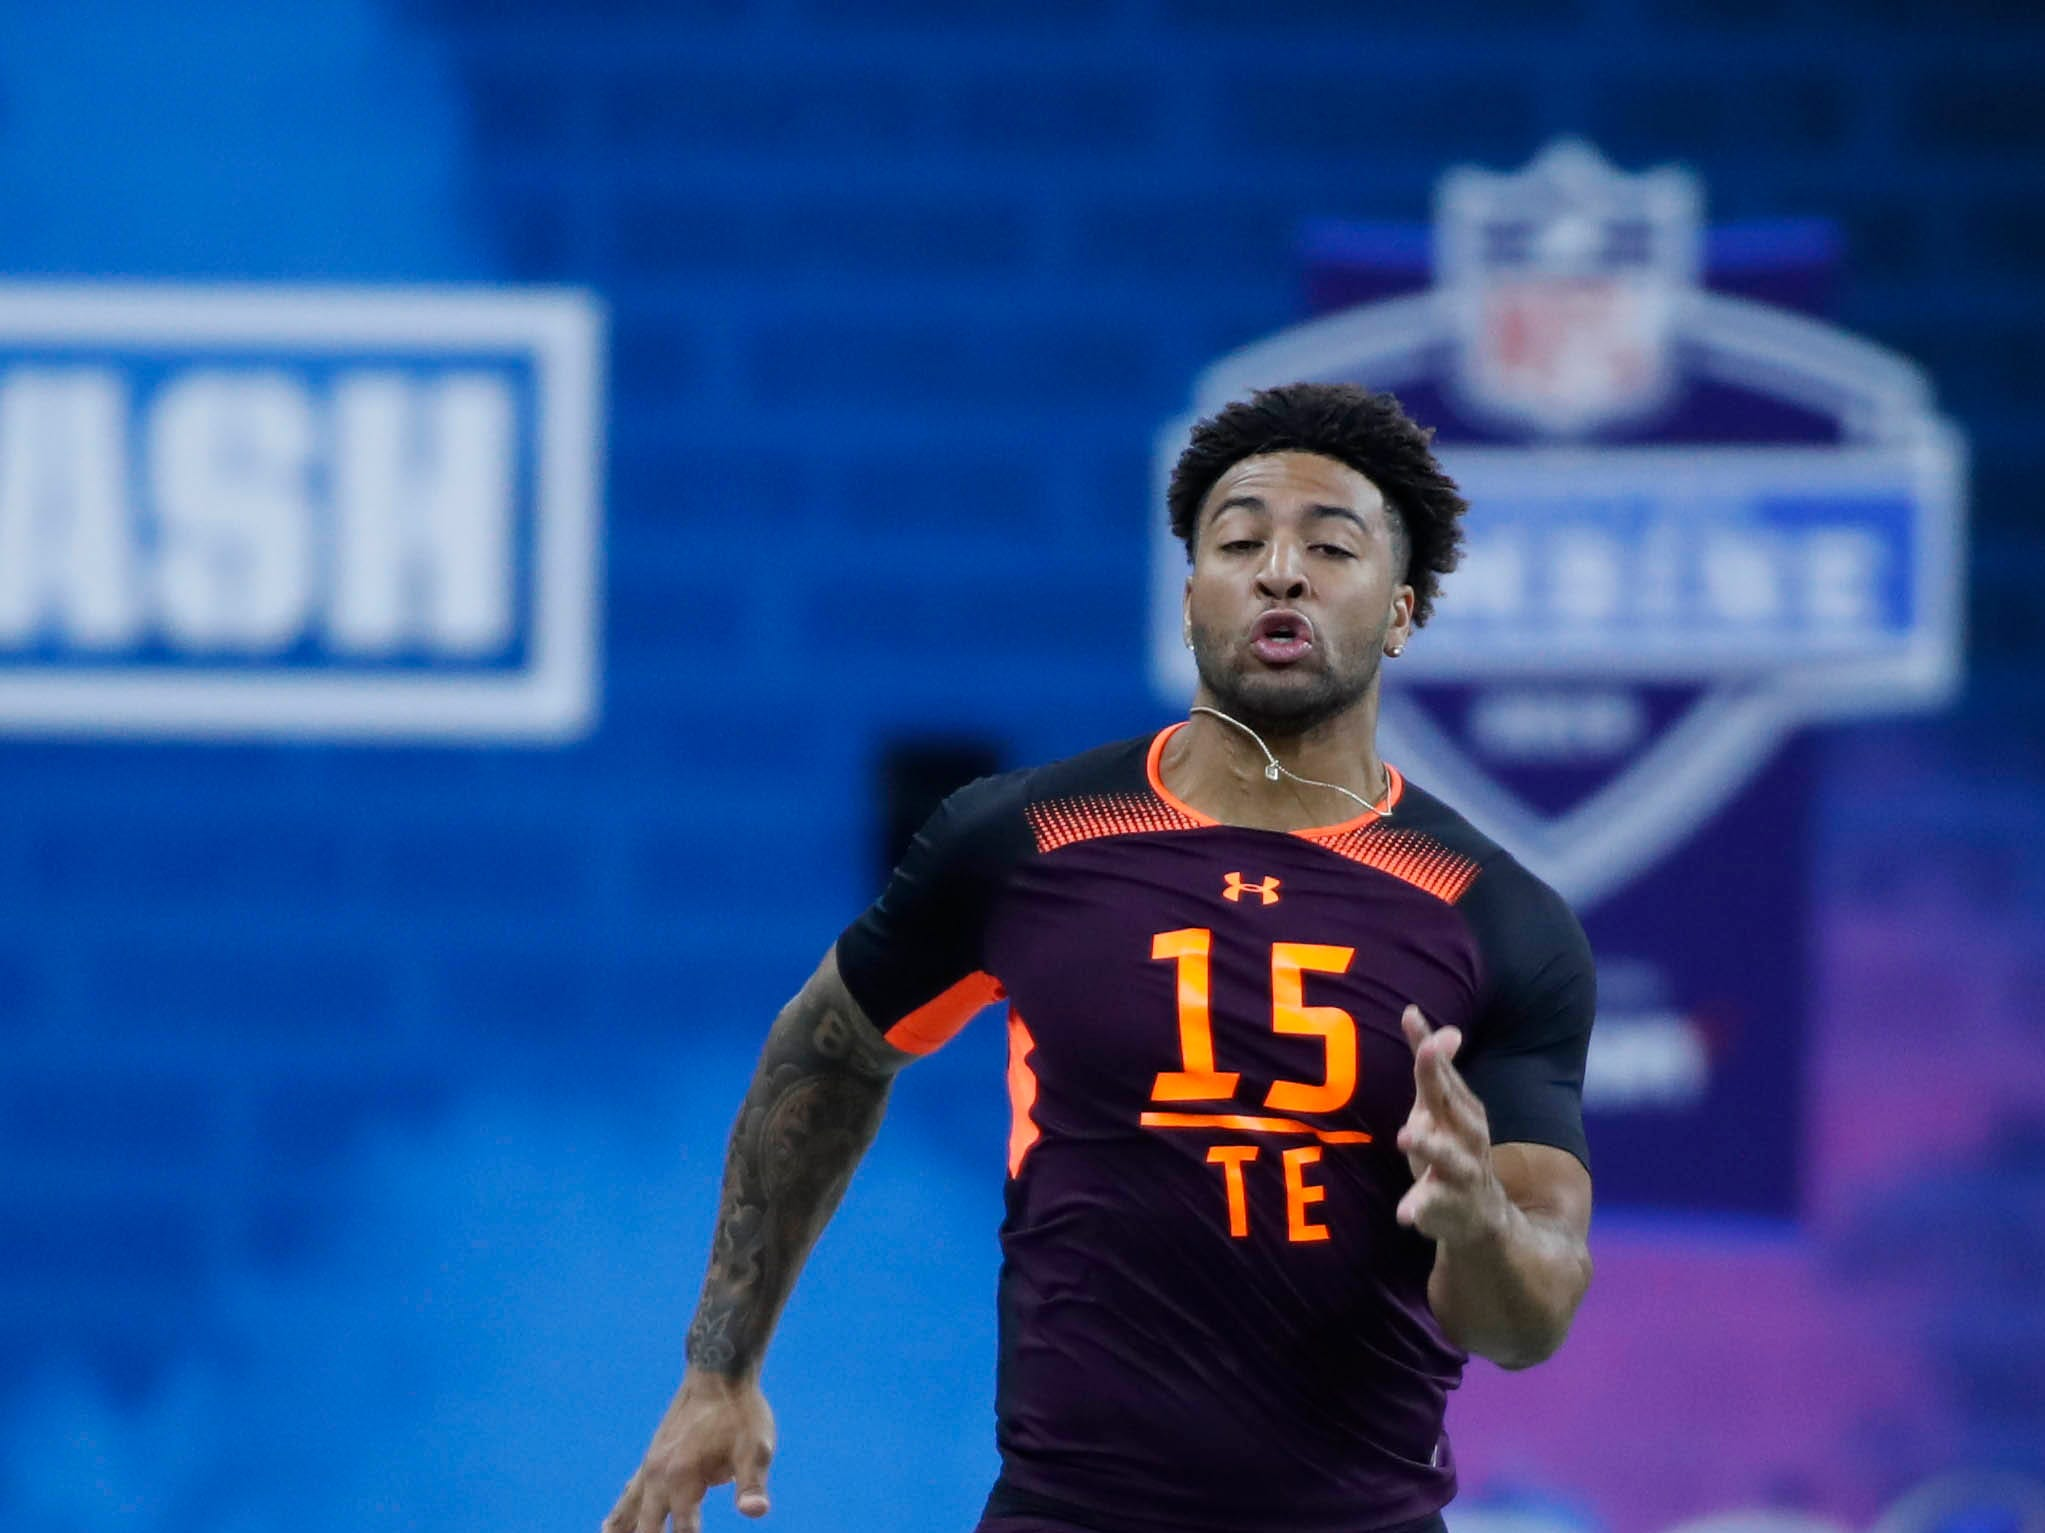 Mar 2, 2019; Indianapolis, IN, USA; Alabama tight end Irv Smith (TE15) runs the 40 yard dash during the 2019 NFL Combine at Lucas Oil Stadium. Mandatory Credit: Brian Spurlock-USA TODAY Sports